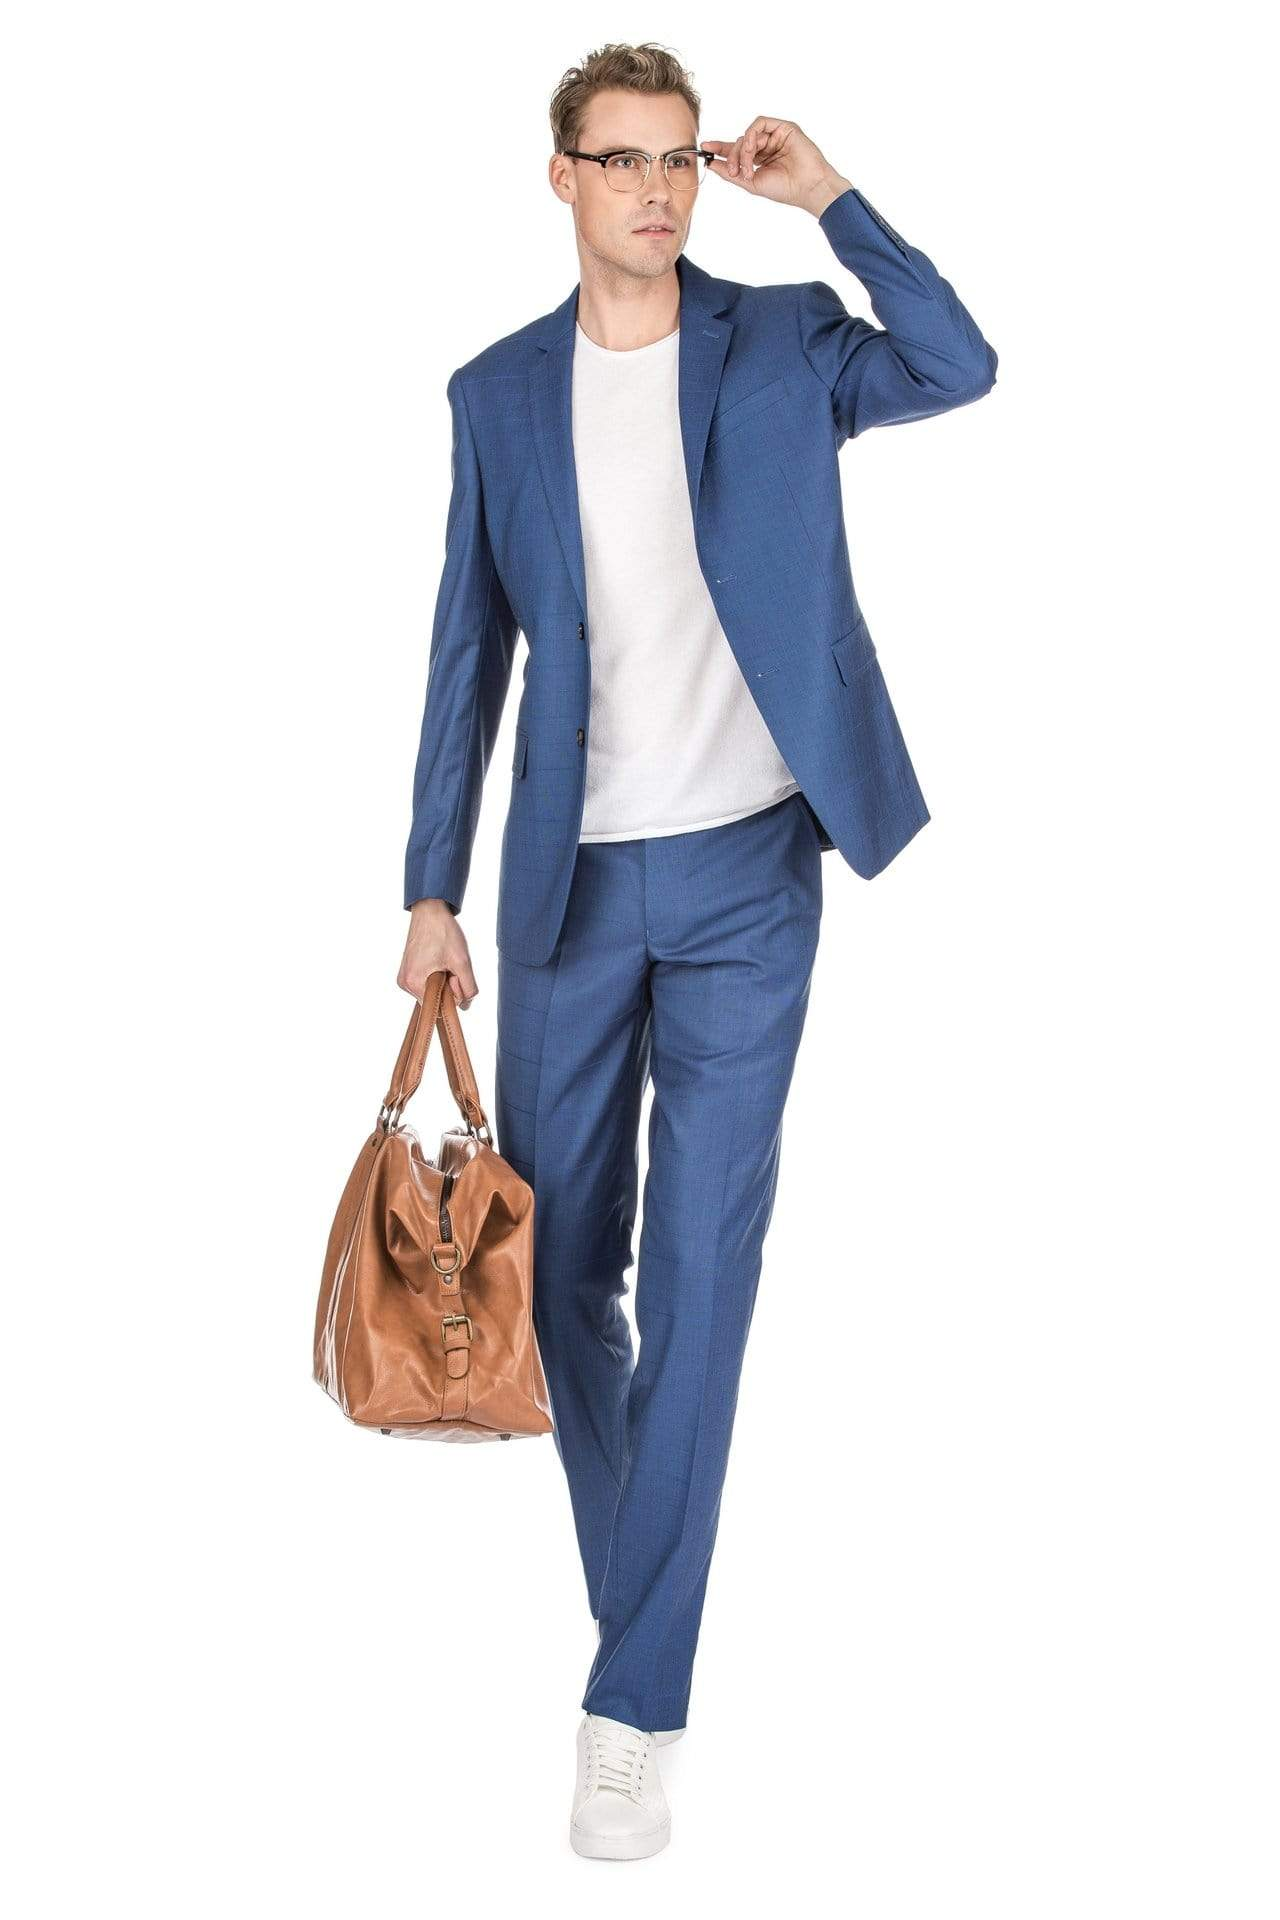 DAILY HAUTE Men's Suits Gino Vitale Men's Check Slim Fit Suits